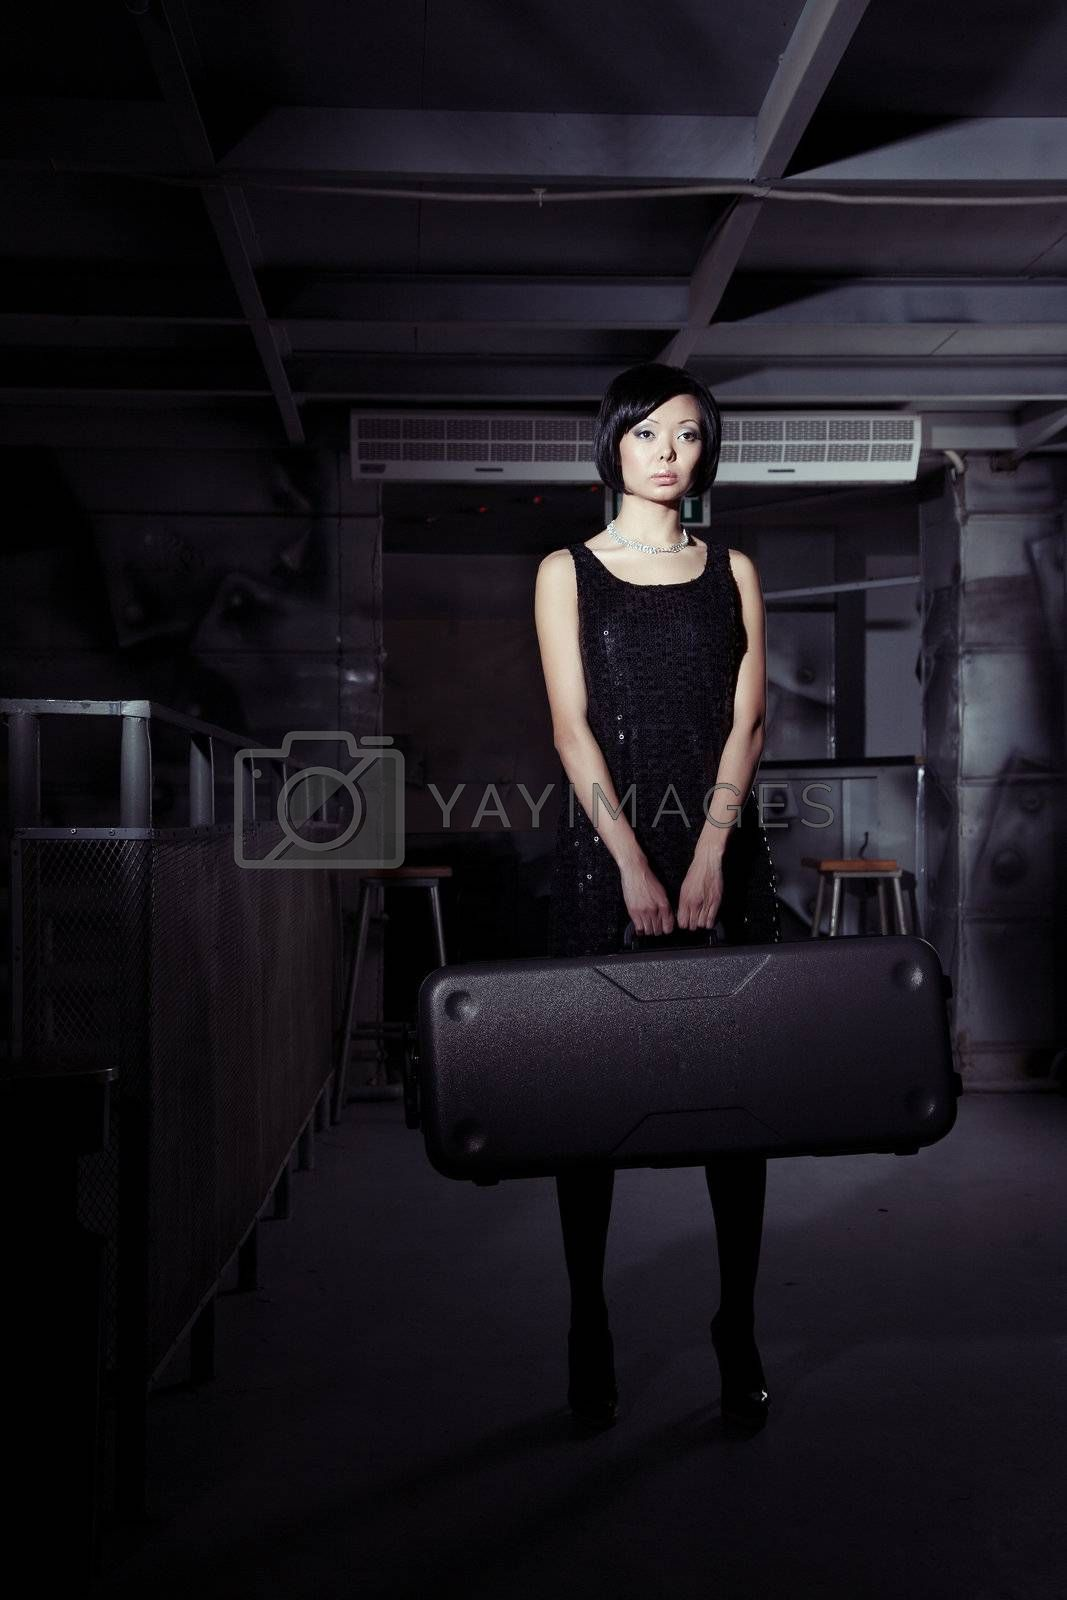 Small brunette lady holding big suitcase in the dark airport terminal